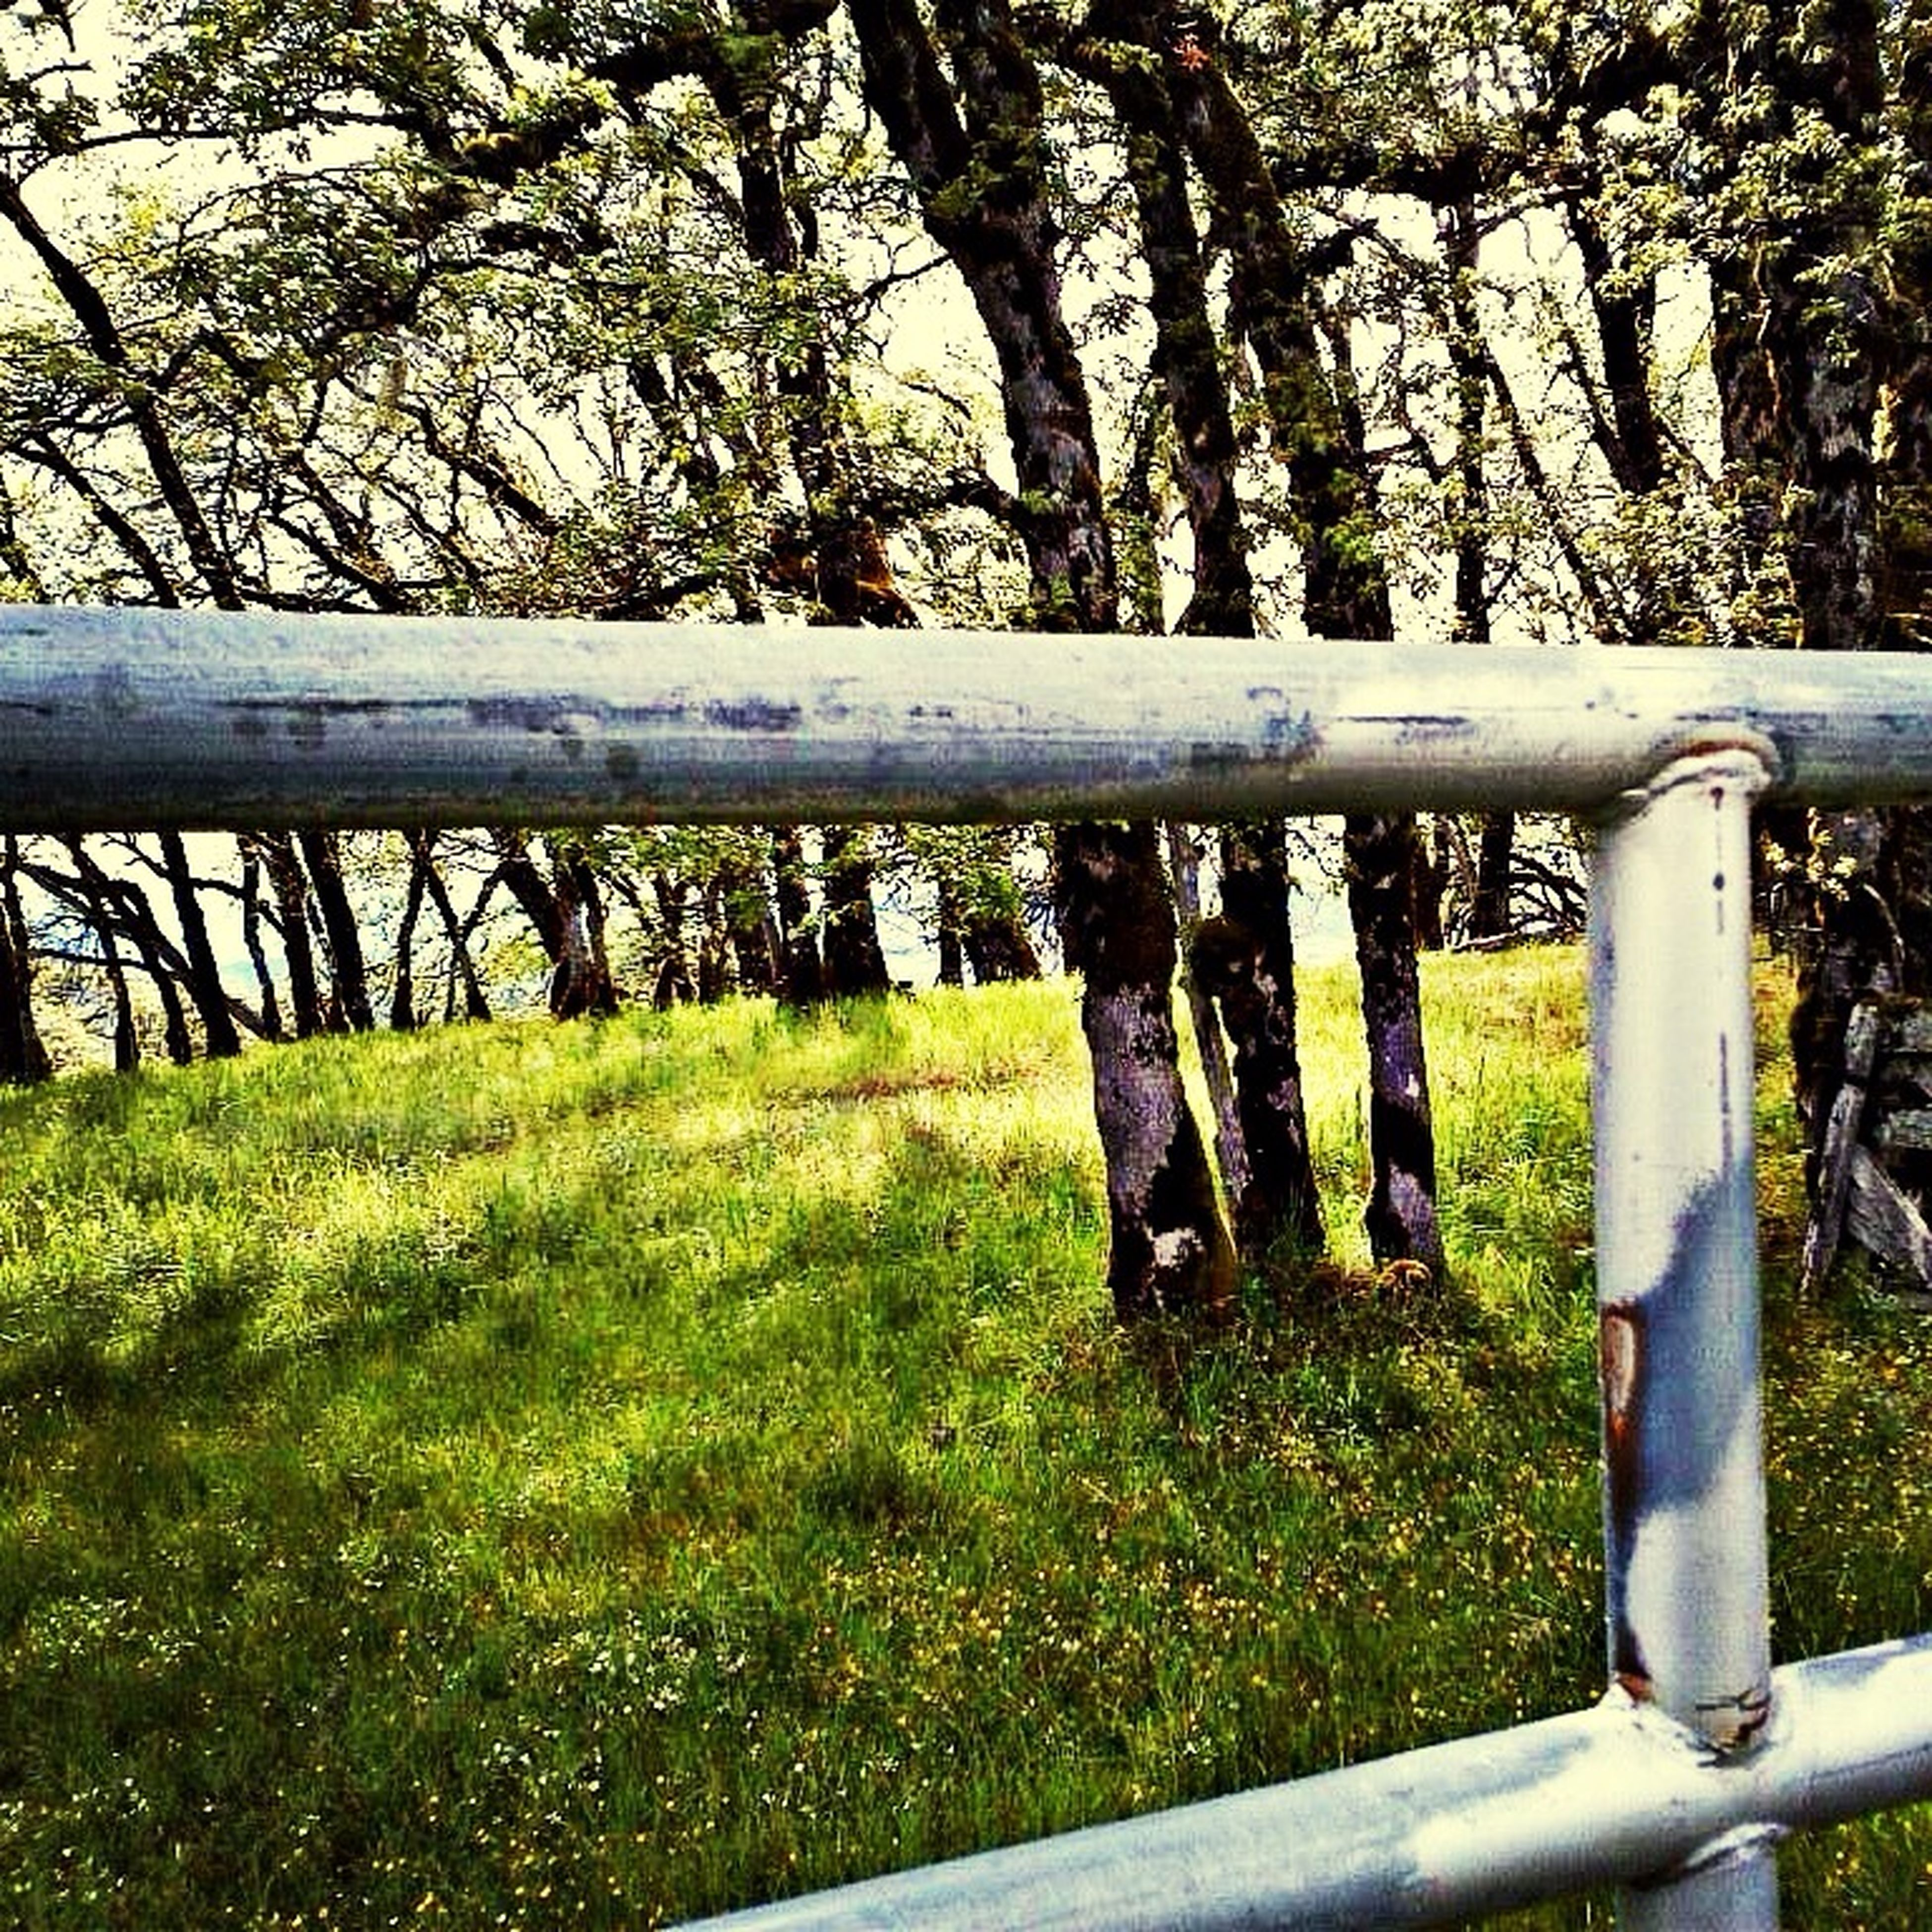 grass, fence, tree, green color, tranquility, railing, tree trunk, nature, protection, growth, park - man made space, safety, branch, field, grassy, tranquil scene, day, beauty in nature, wood - material, no people